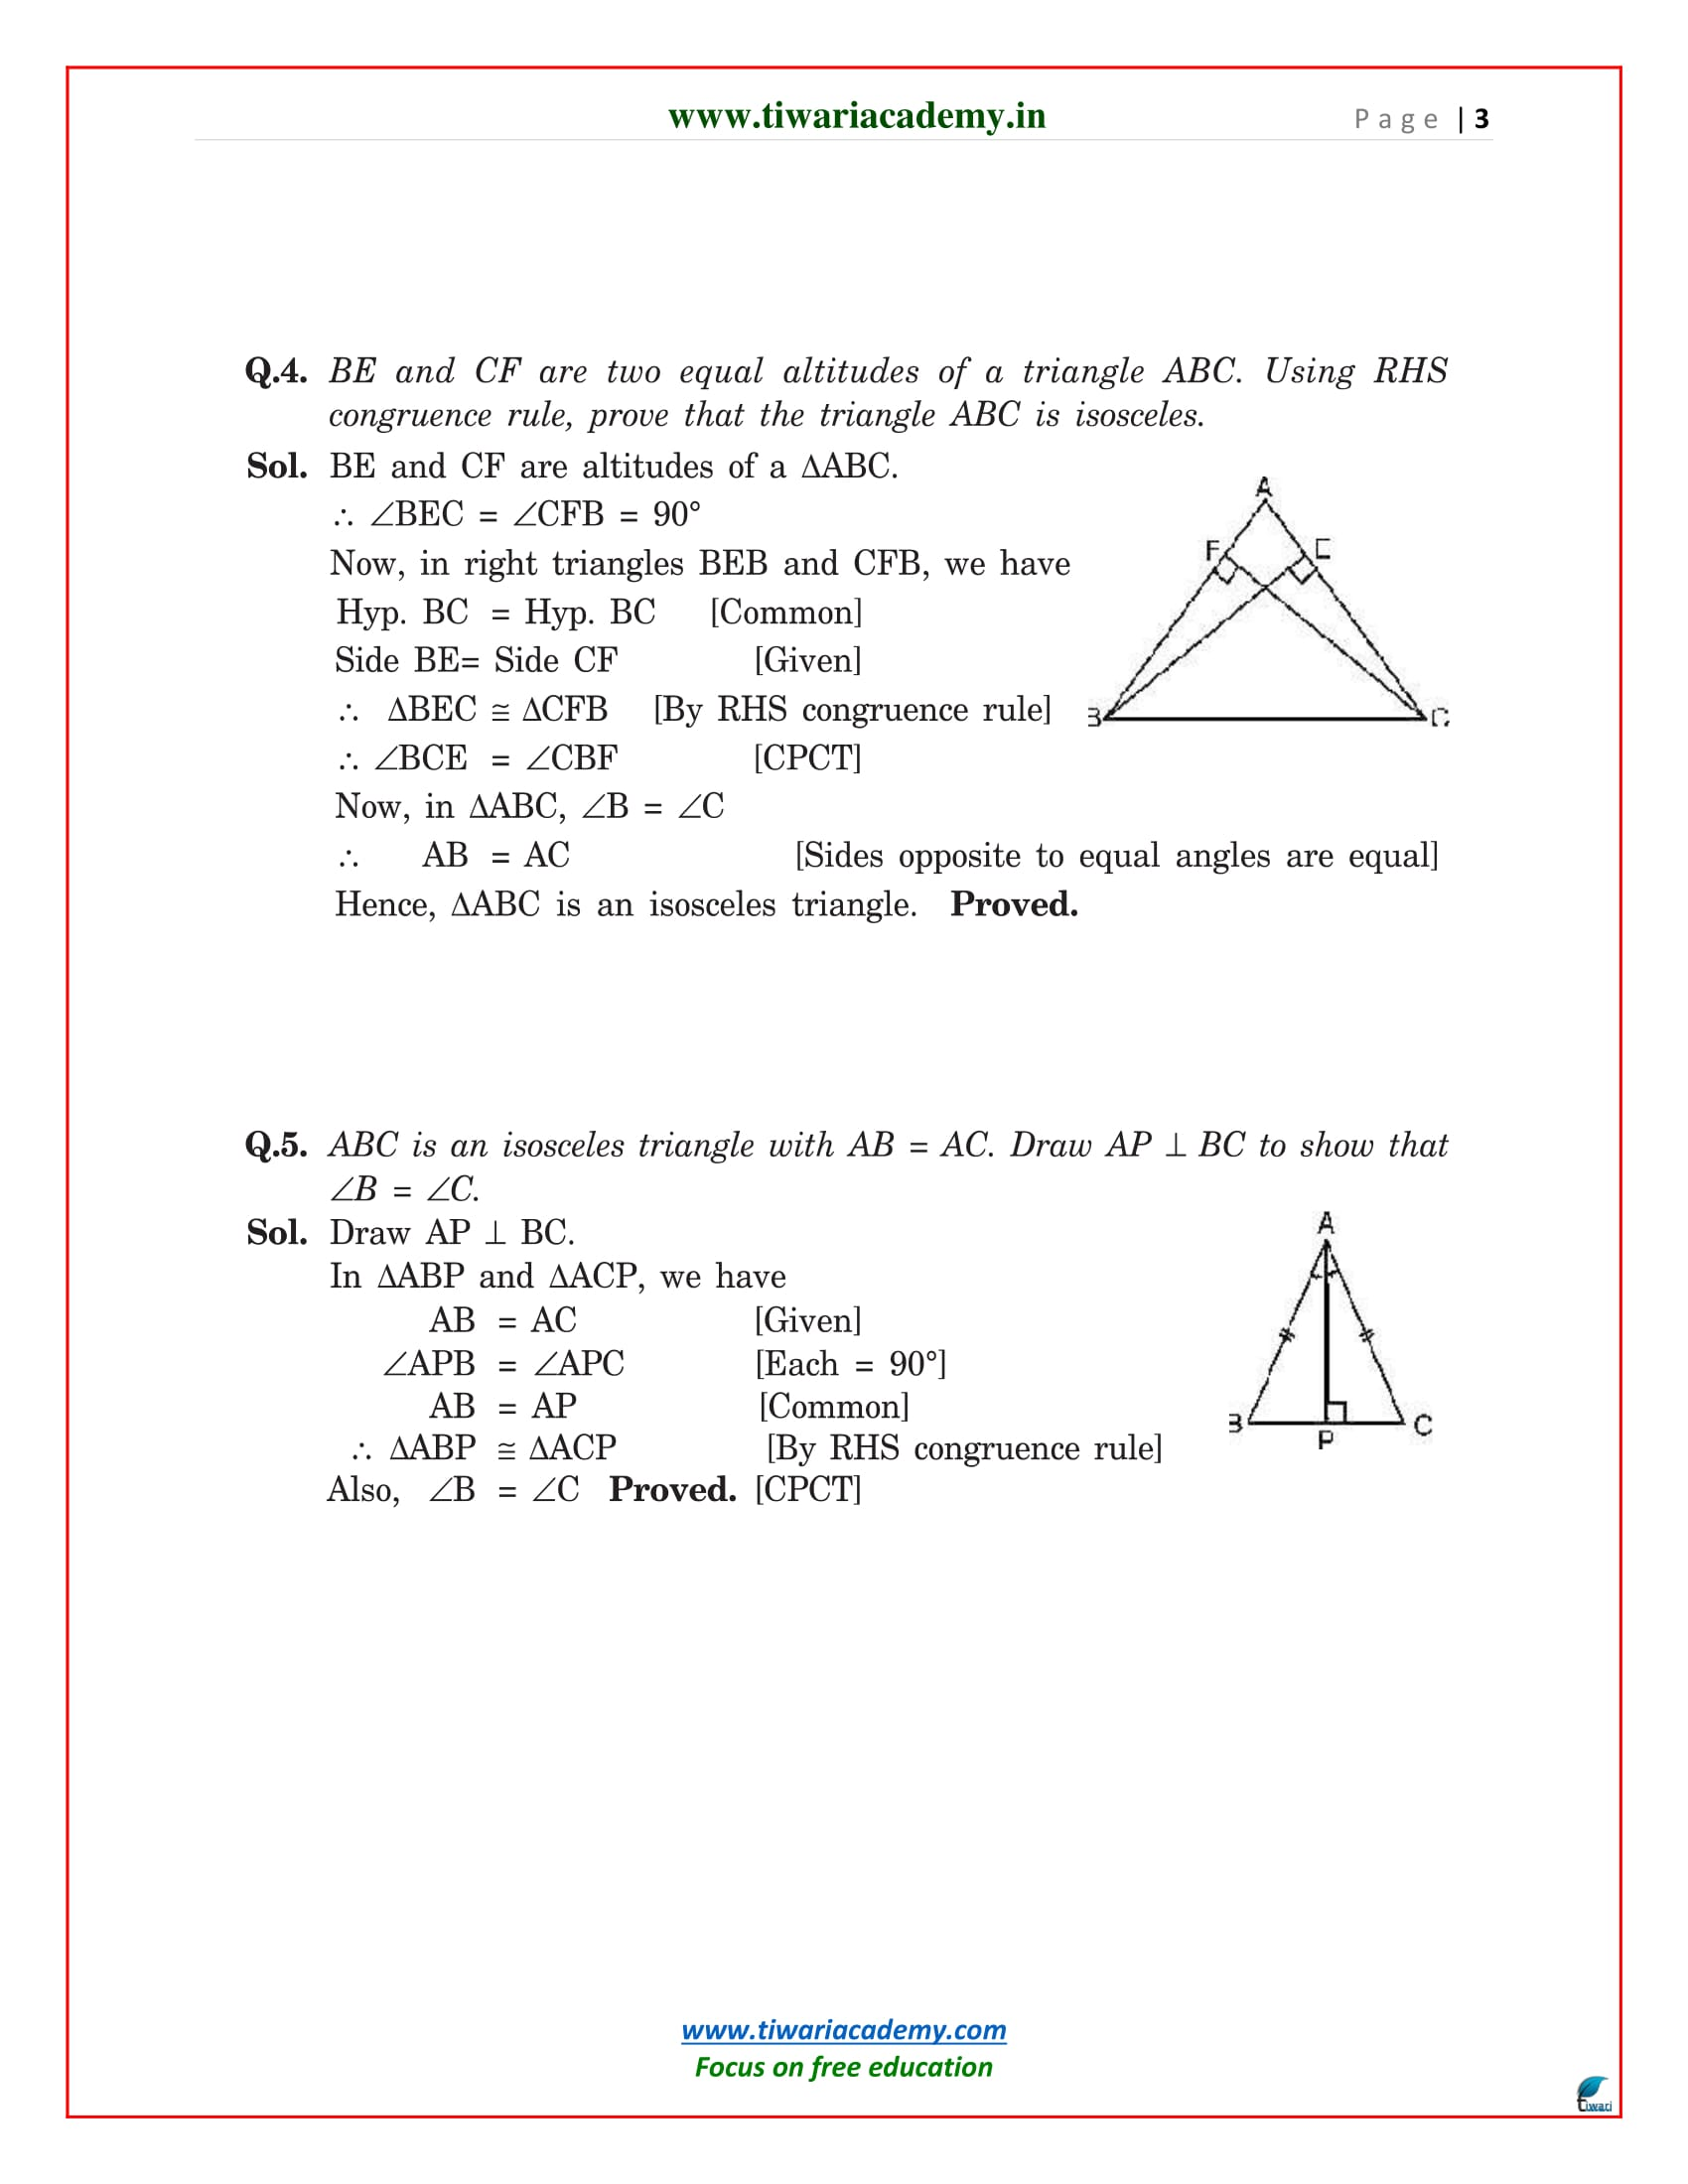 class 9 maths chapter 7 exercise 7.3 solutions